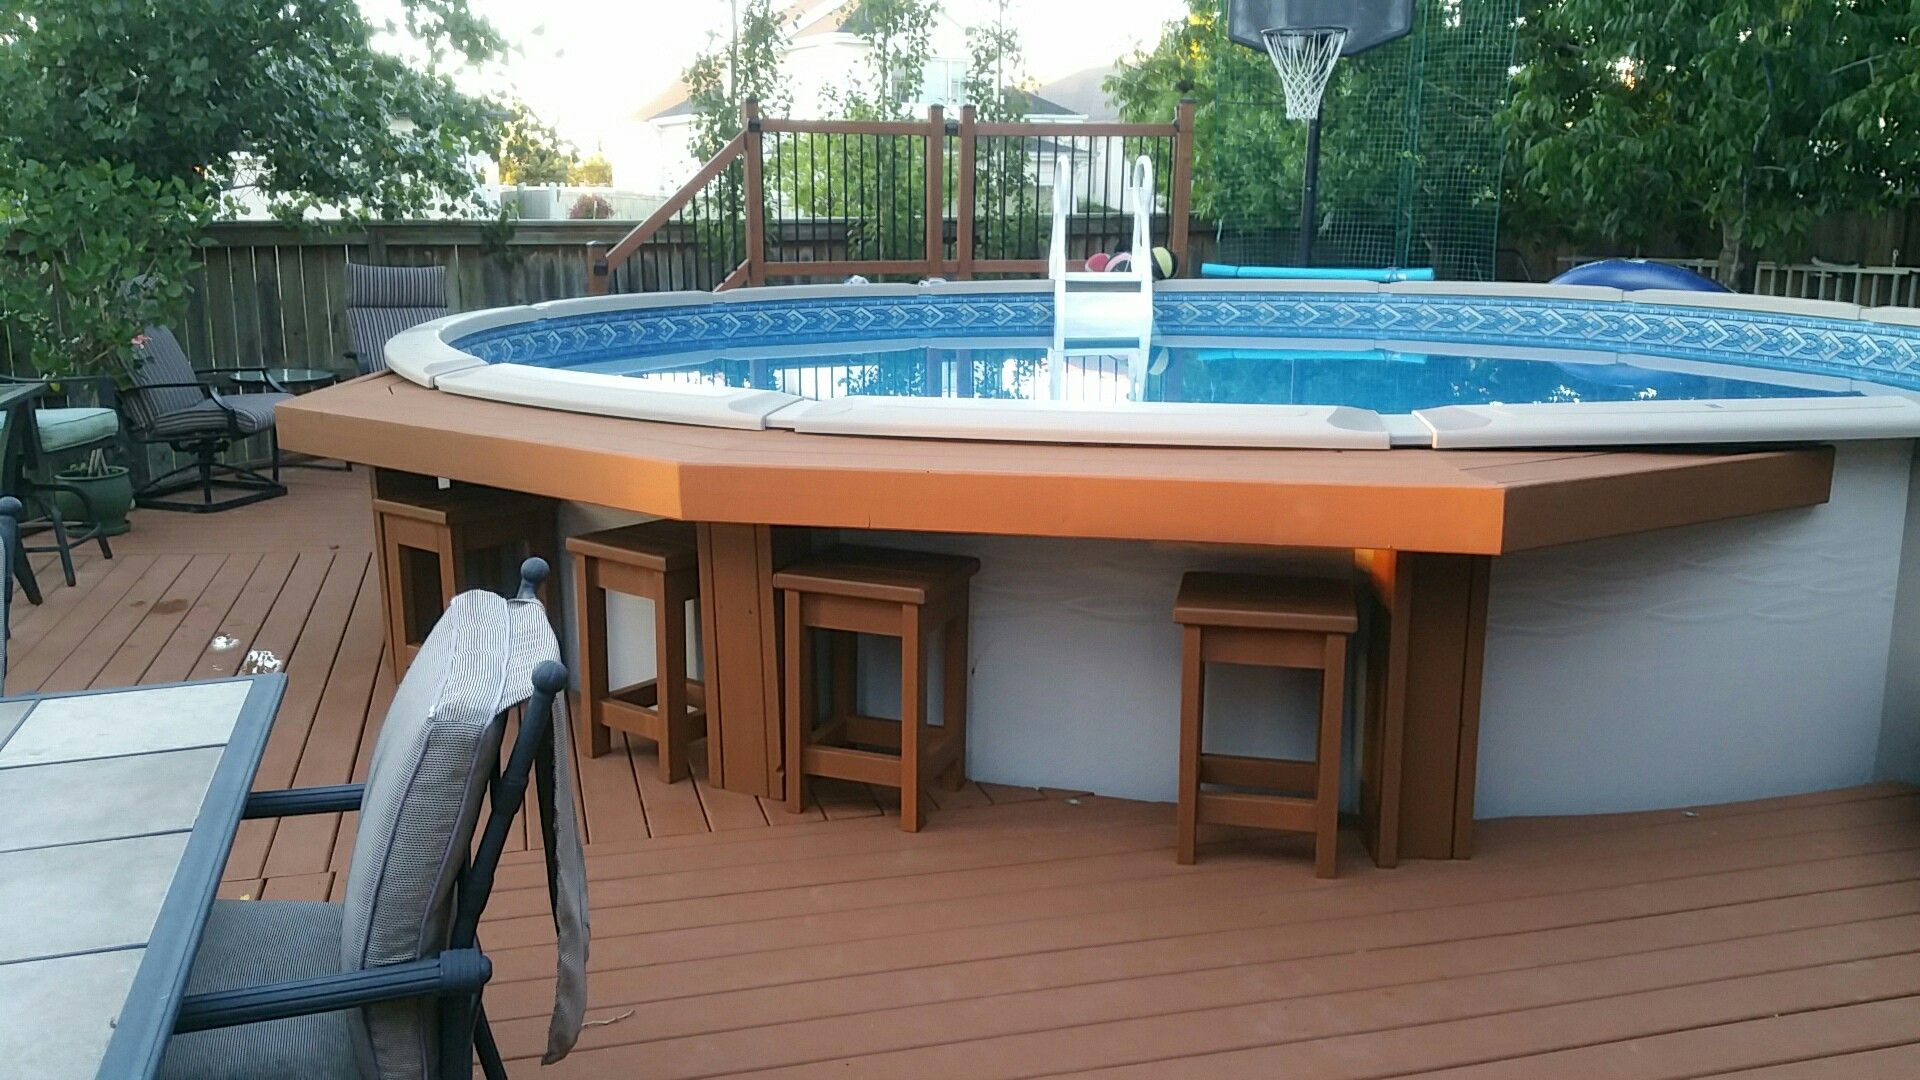 Pool Bar Backyard Pool Landscaping Backyard Pool Small Backyard Pools